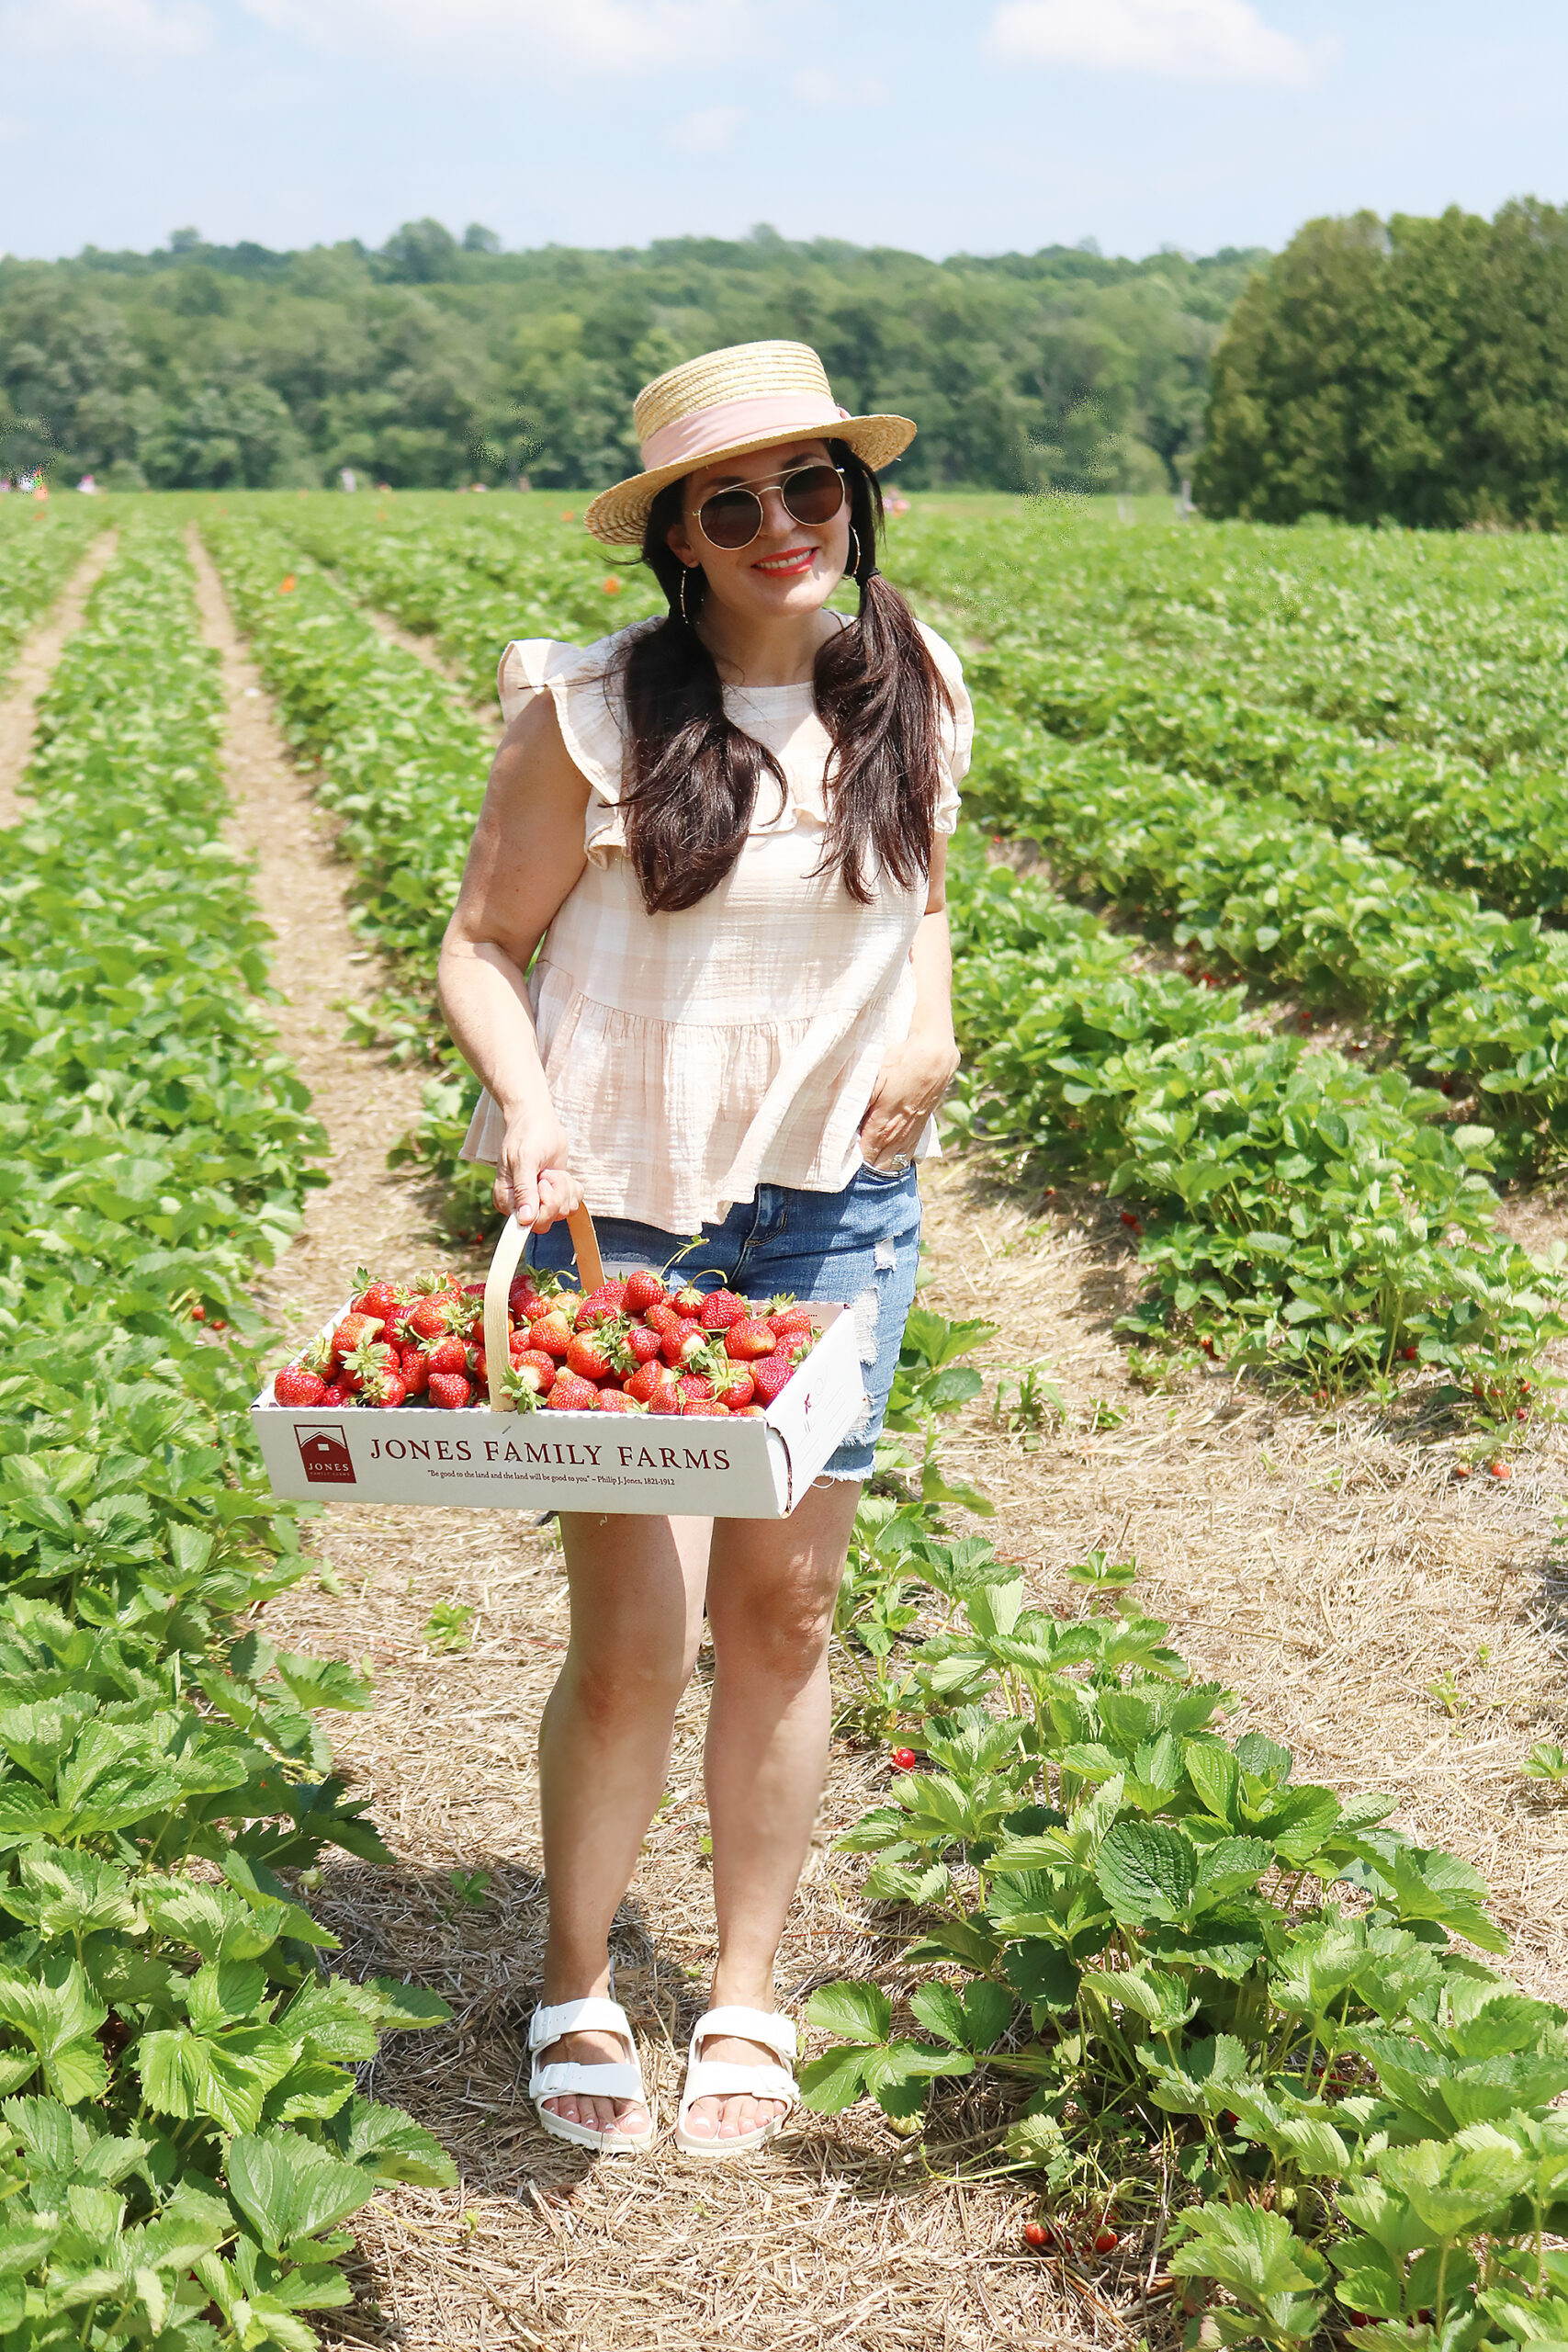 What to wear when picking strawberries? Make sure to wear a hat, flowy clothes to stay cool and easily bend down and open toe sandals that are okay to get dirty and wet    Darleen Meier Top Lifestyle CT Blogger #strawberryfieldsforever #darlingdarleen